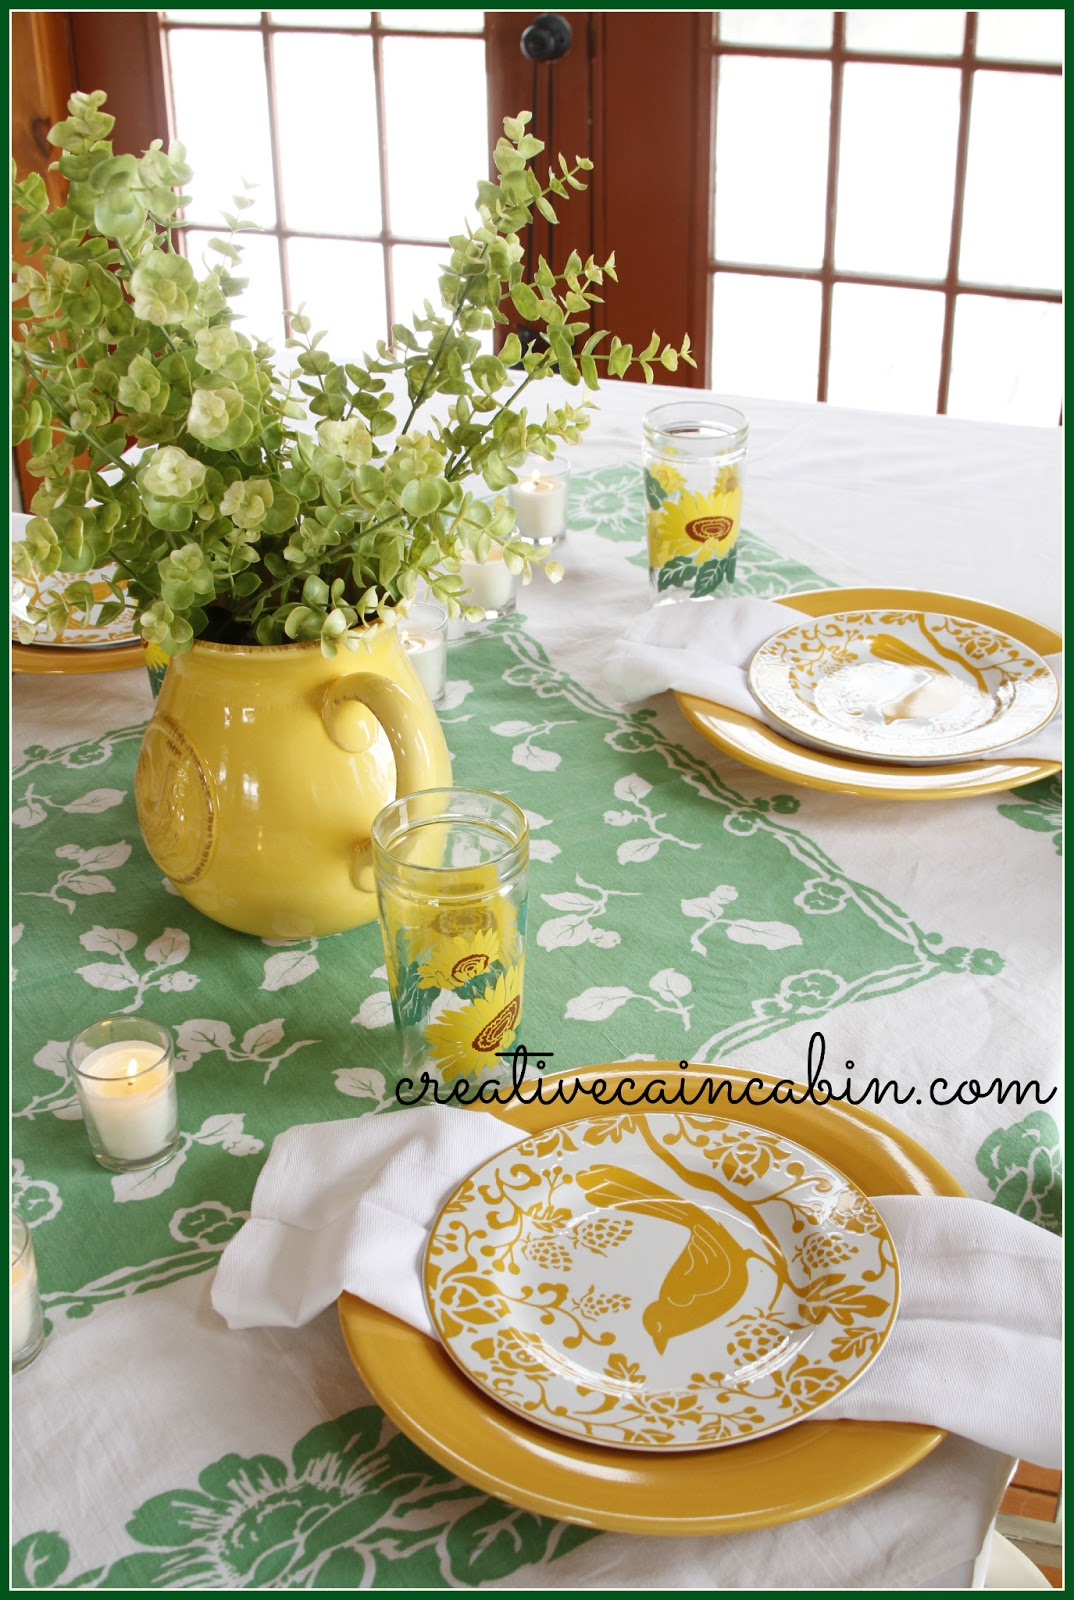 I looked around the house and found all the things that fit into the green and yellow theme I was going for and if I found it in a vintage item ...  sc 1 st  Creative Cain Cabin & St. Patrick\u0027s Day Table Setting - CREATIVE CAIN CABIN